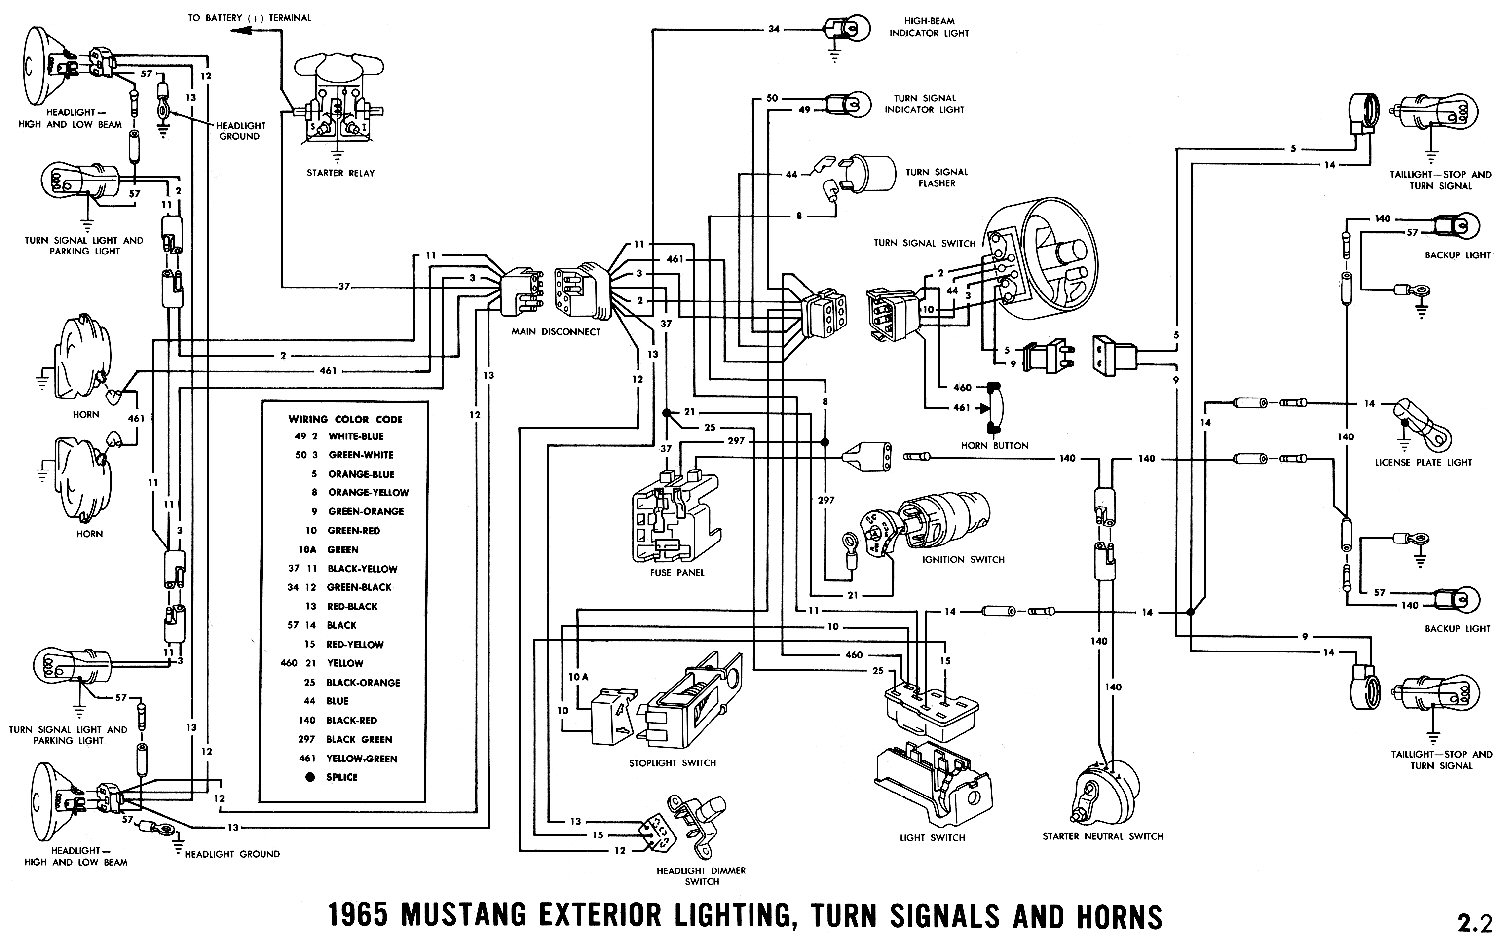 1965 mustang ignition switch wiring diagram schematic